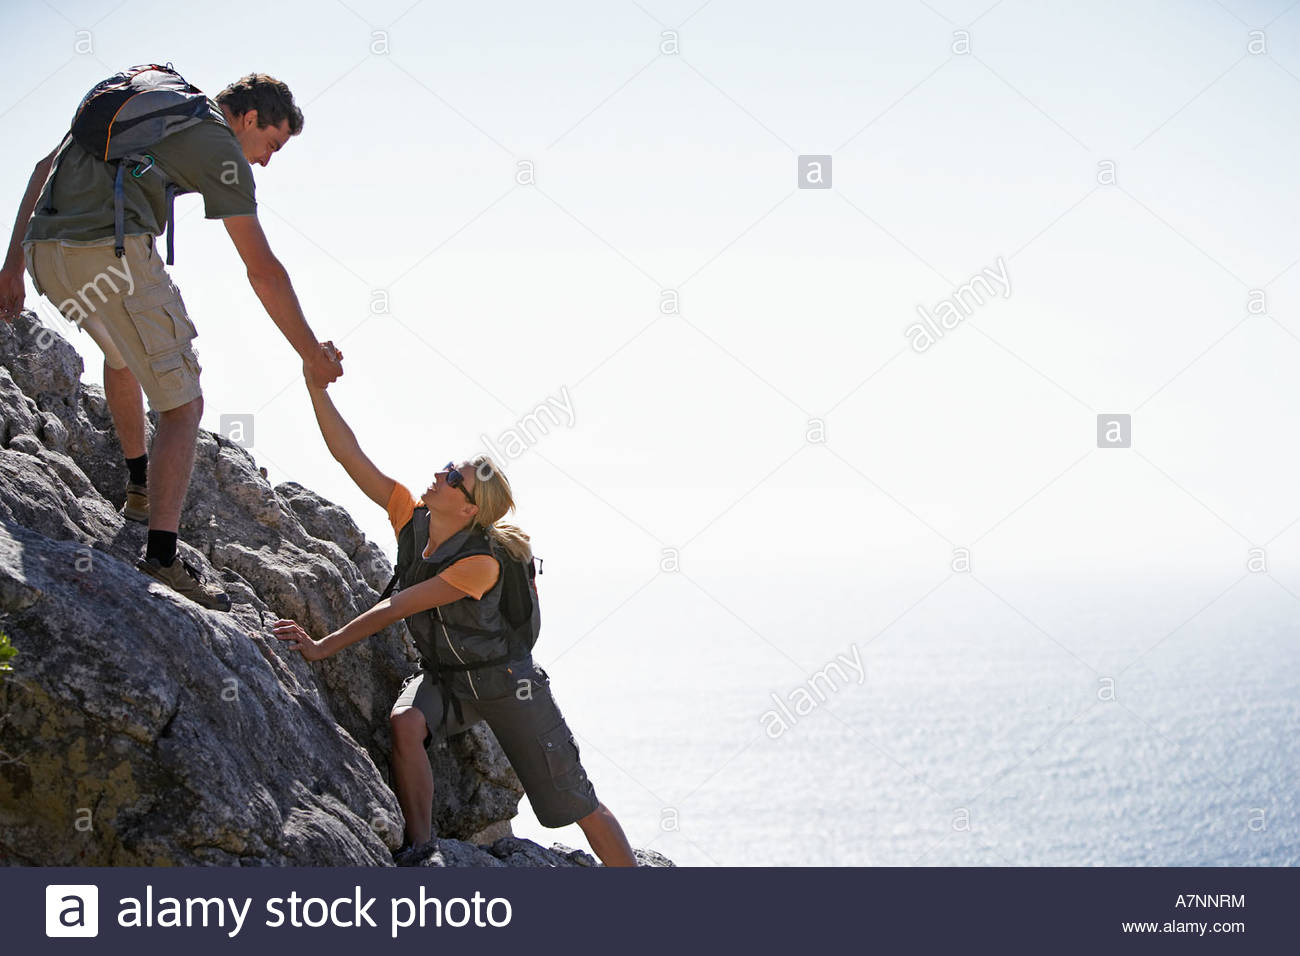 Couple climbing rock in bright sunlight man assisting woman side view sea in background - Stock Image